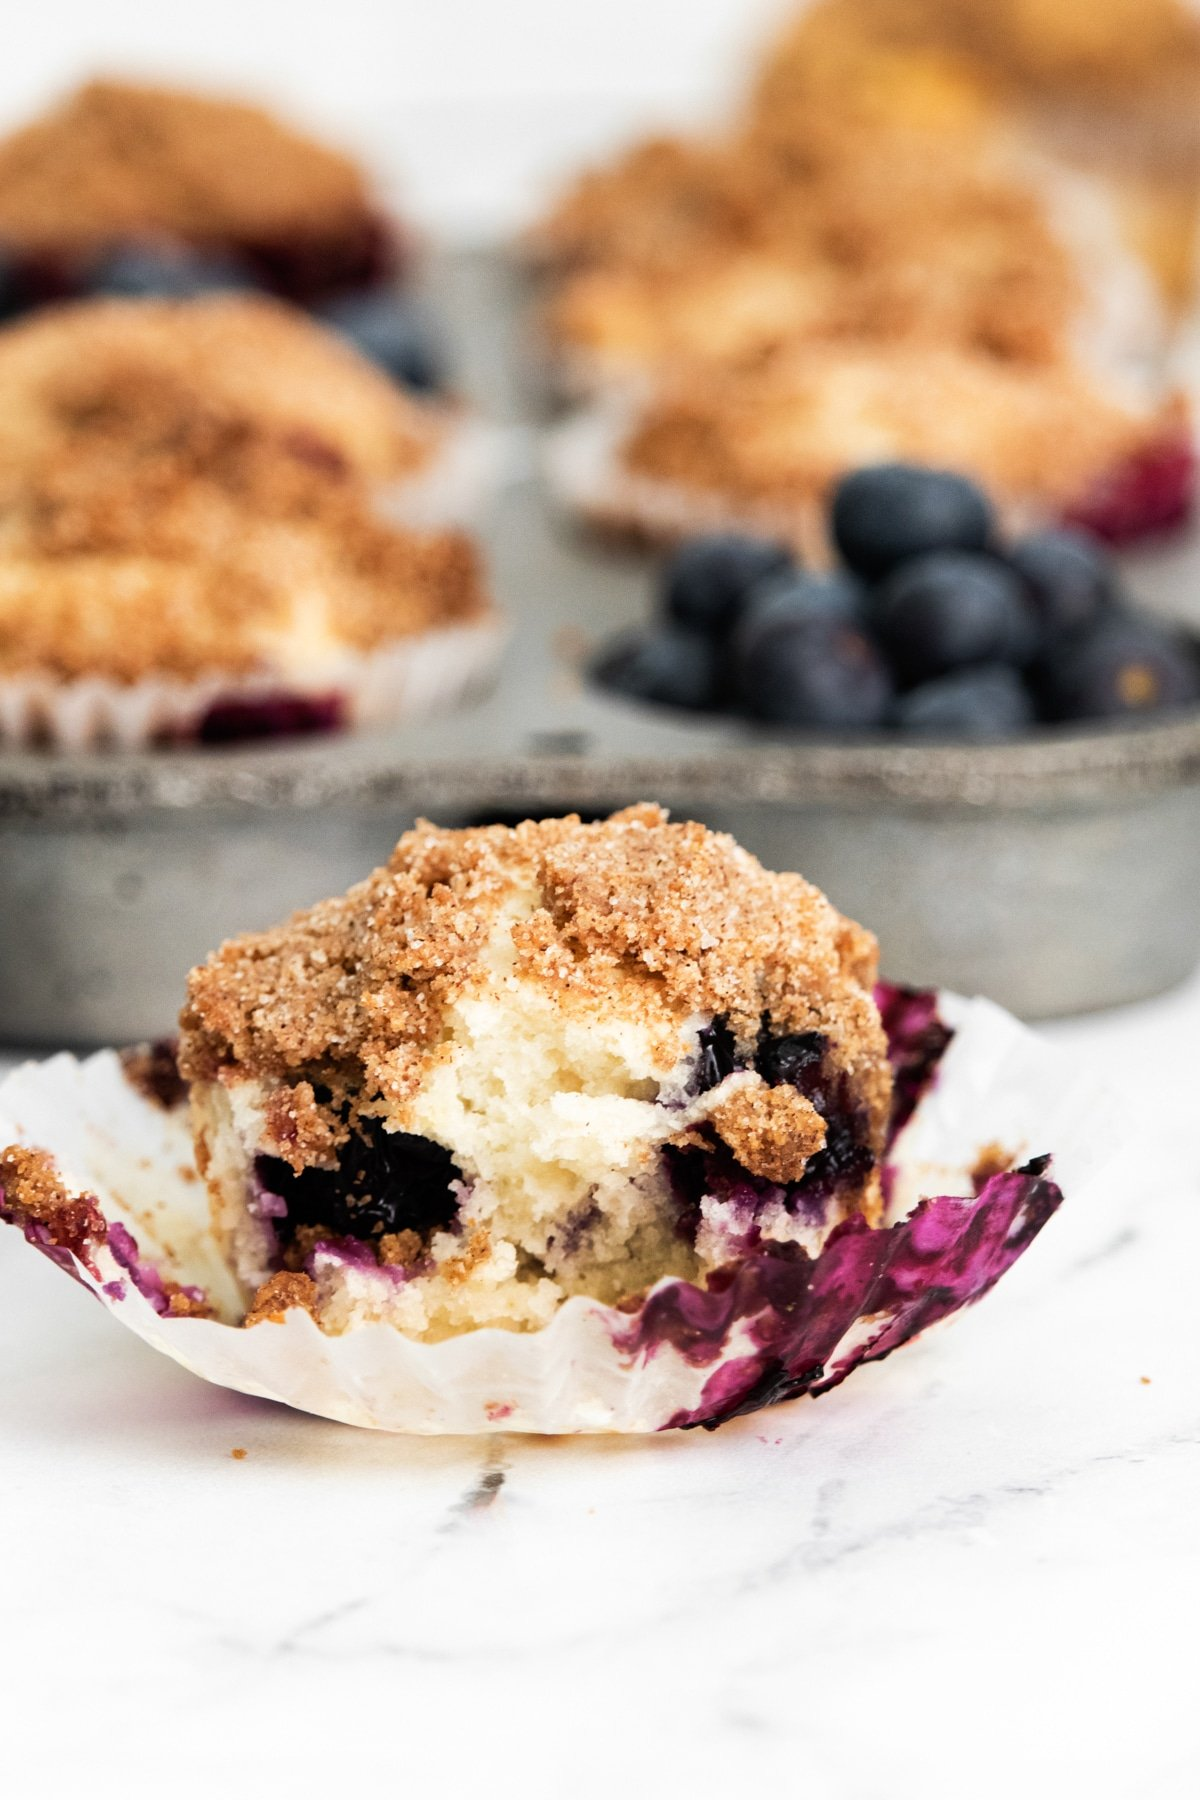 Lemon blueberry muffin in a wrapper